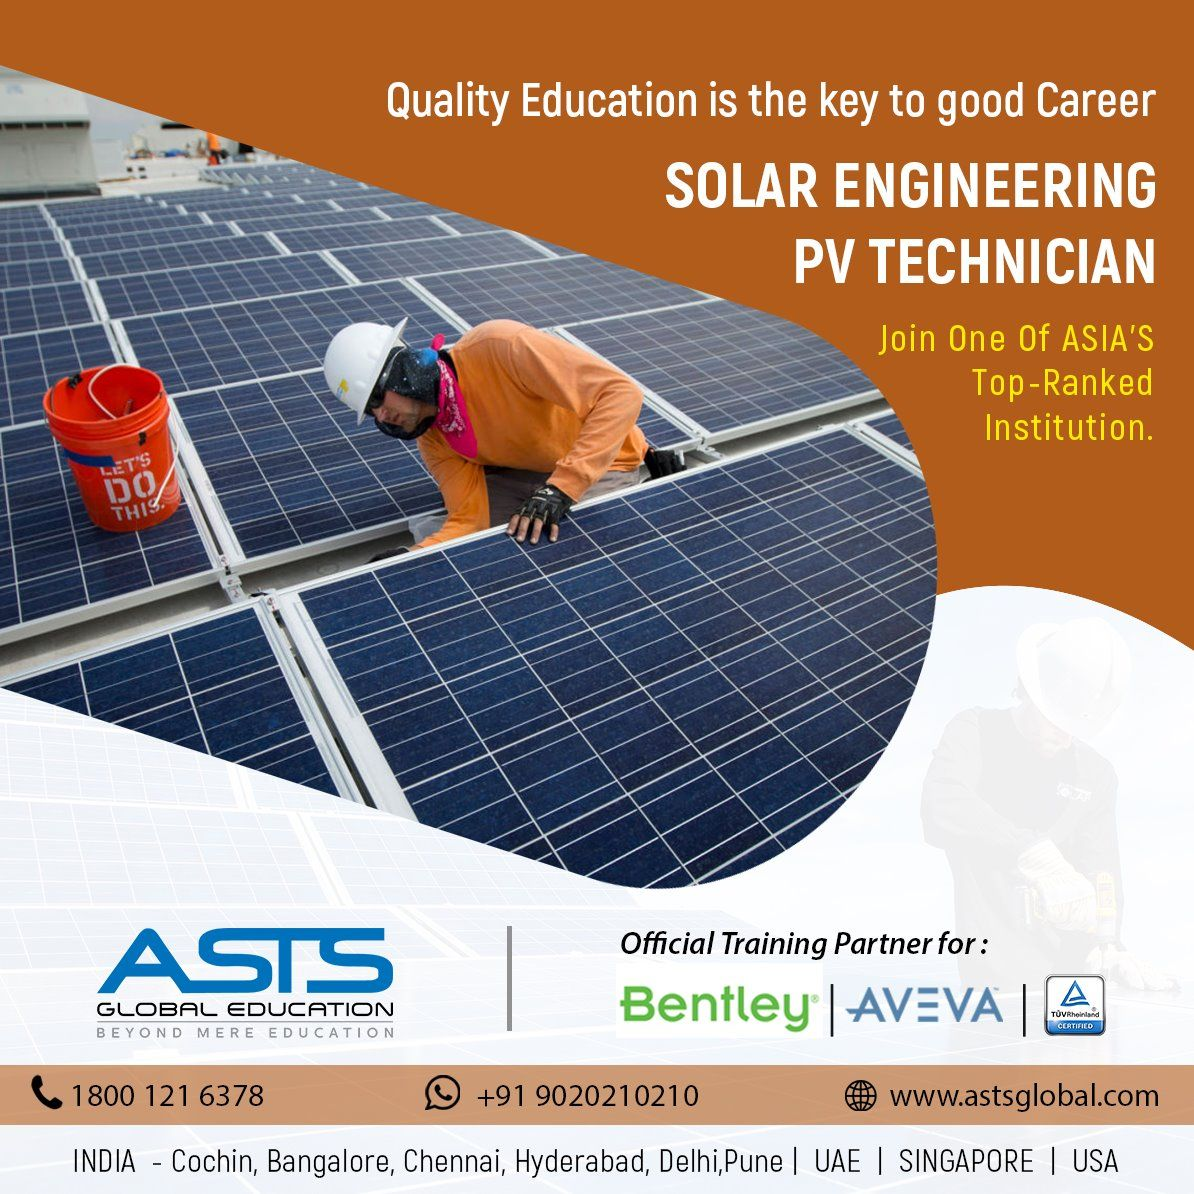 Get certified in Solar Engineering PV Technician course